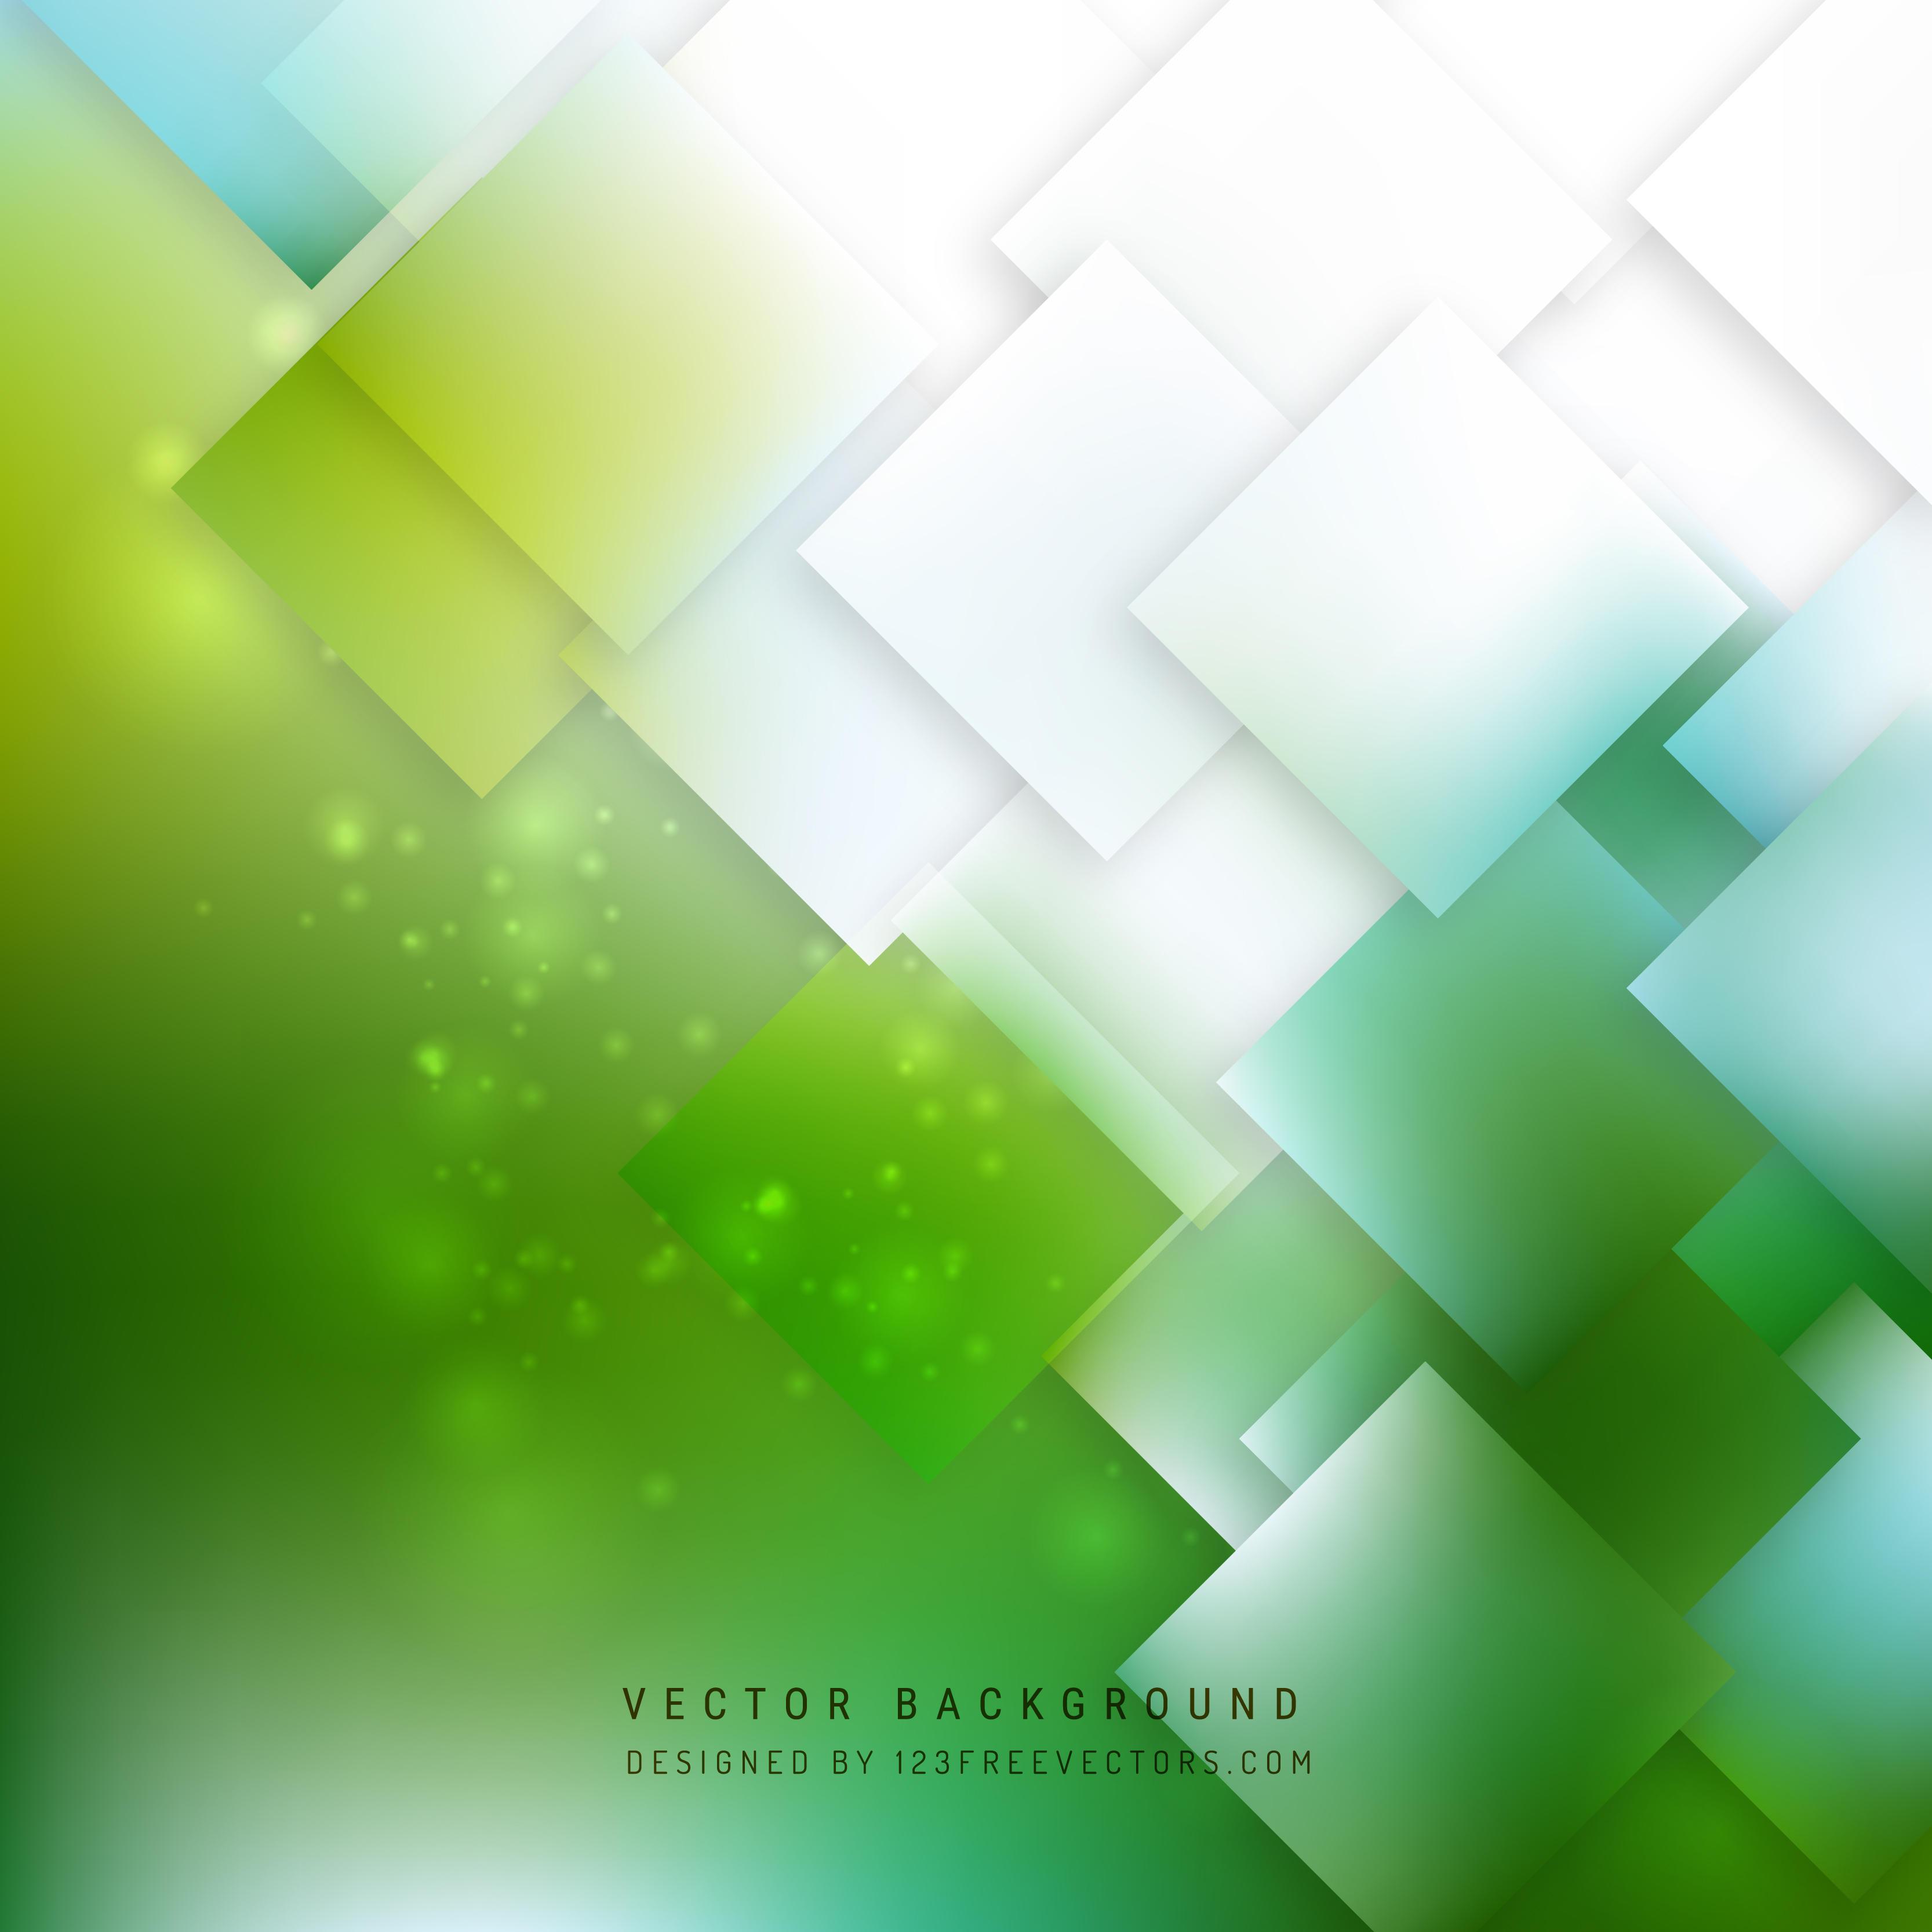 Abstract Blue Green Square Background Design